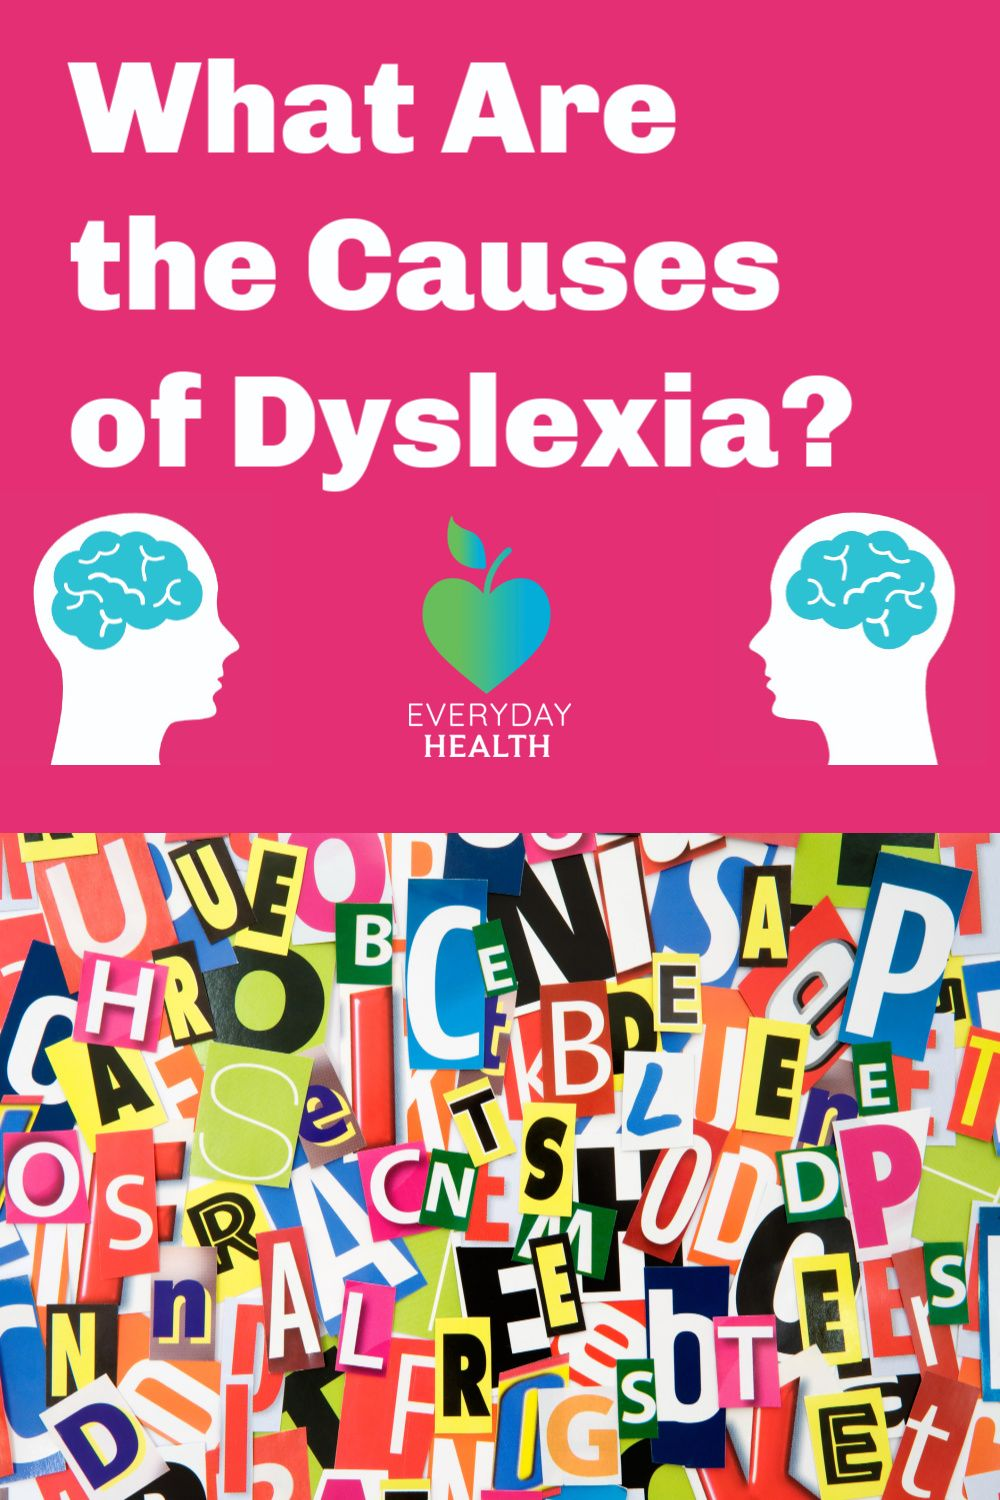 Understanding Dyslexia For Parents Kidshealth >> Dyslexia Causes Myths Questions And Answers Boost Your Health